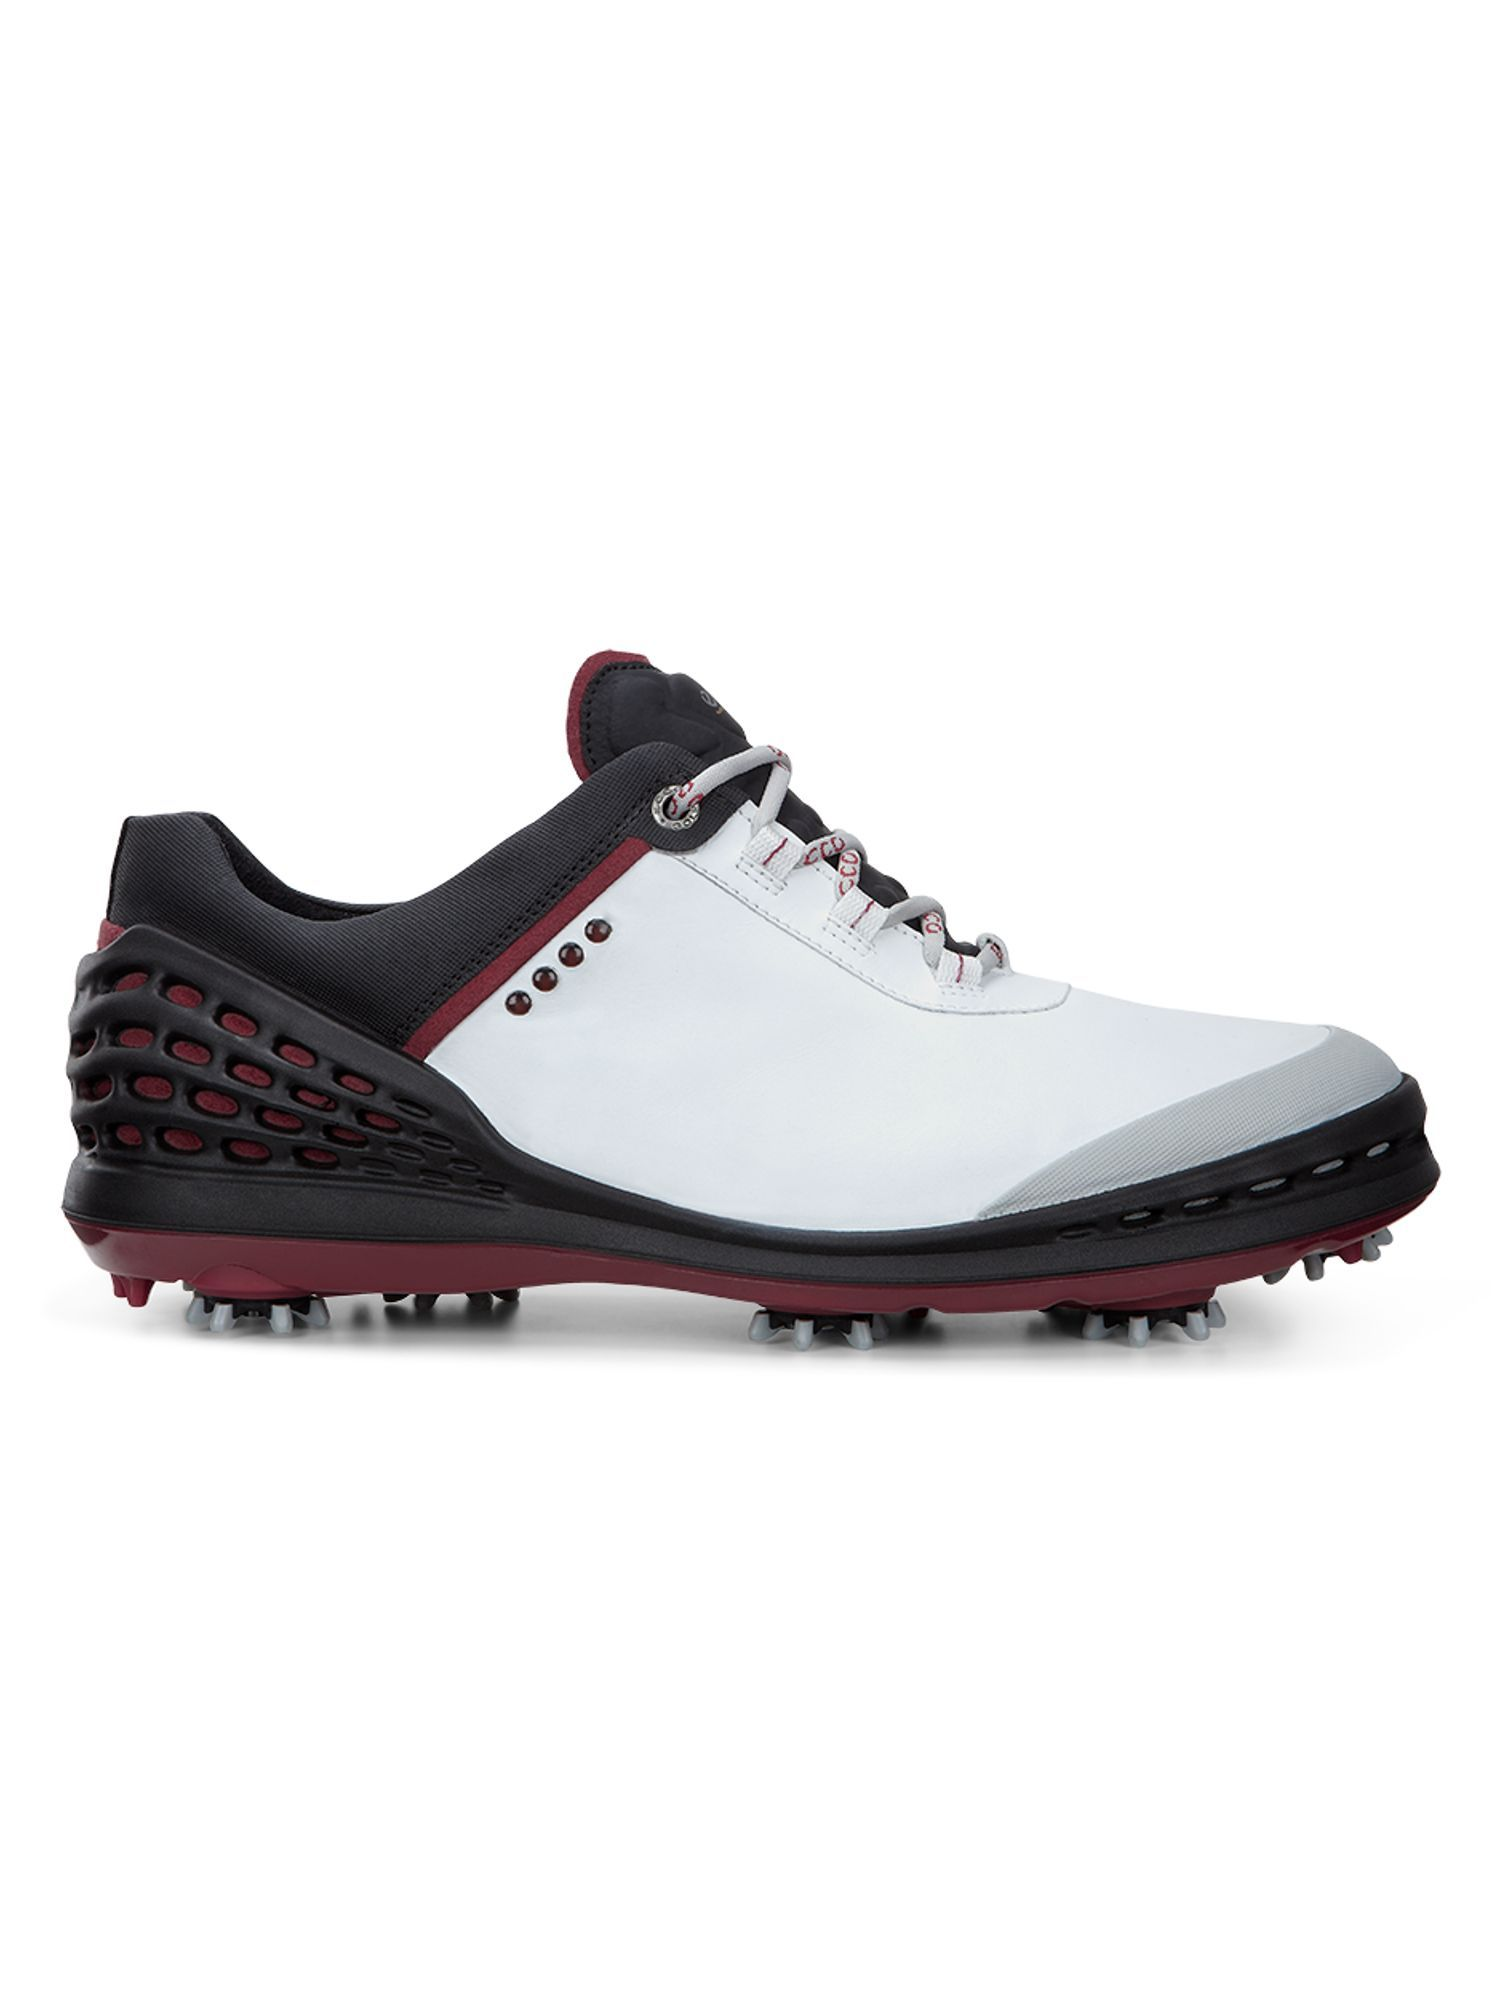 Ecco Golf Cage Golf Shoes White Golf Shoes Mens Nike Golf Shoes Golf Shoes Mens